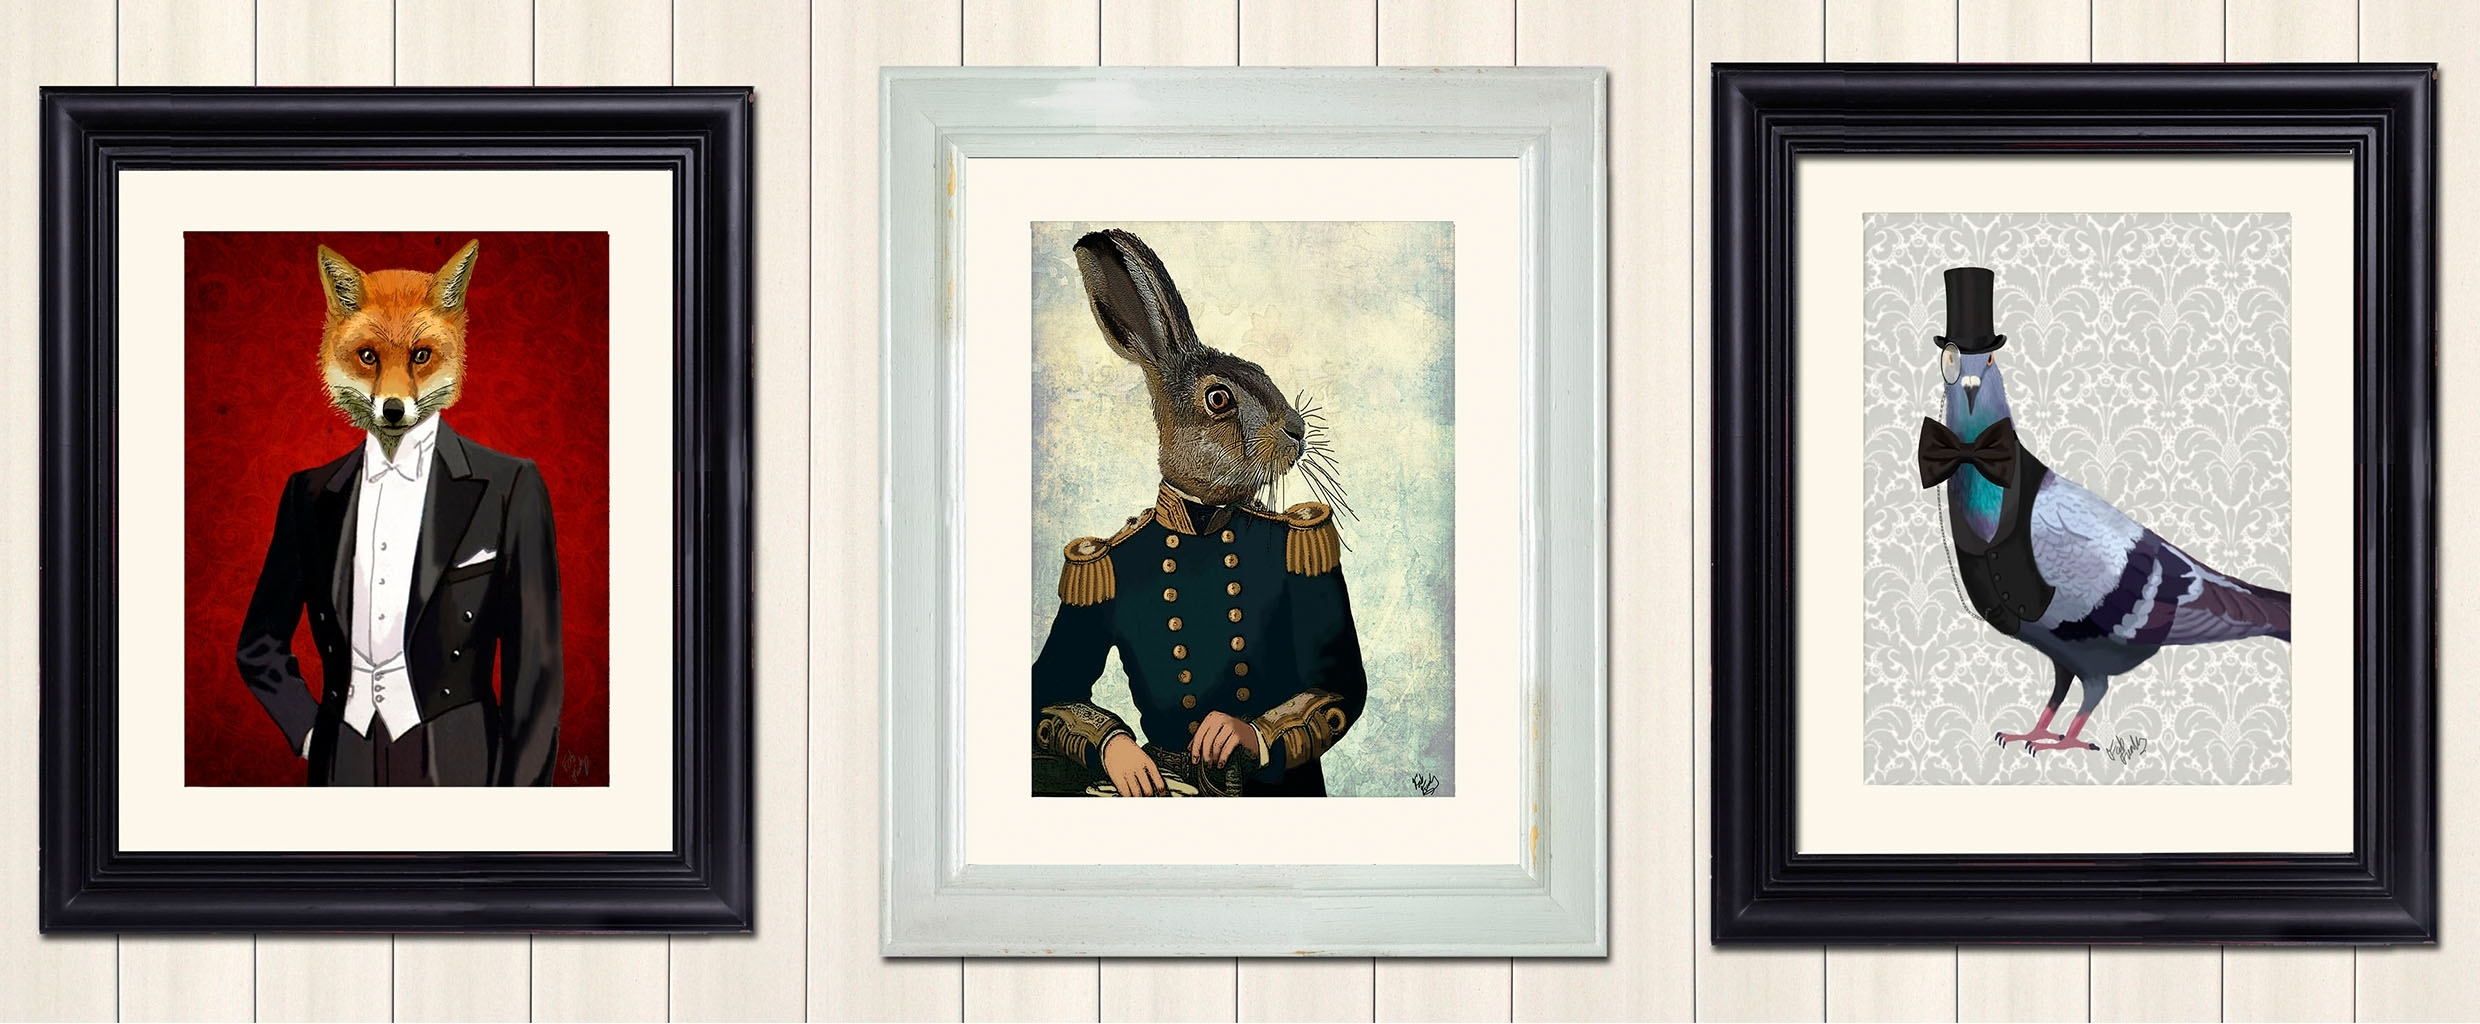 Fab Funky Art Prints From Achica | Bright Group International With Regard To 2017 Funky Art Framed Prints (View 2 of 15)